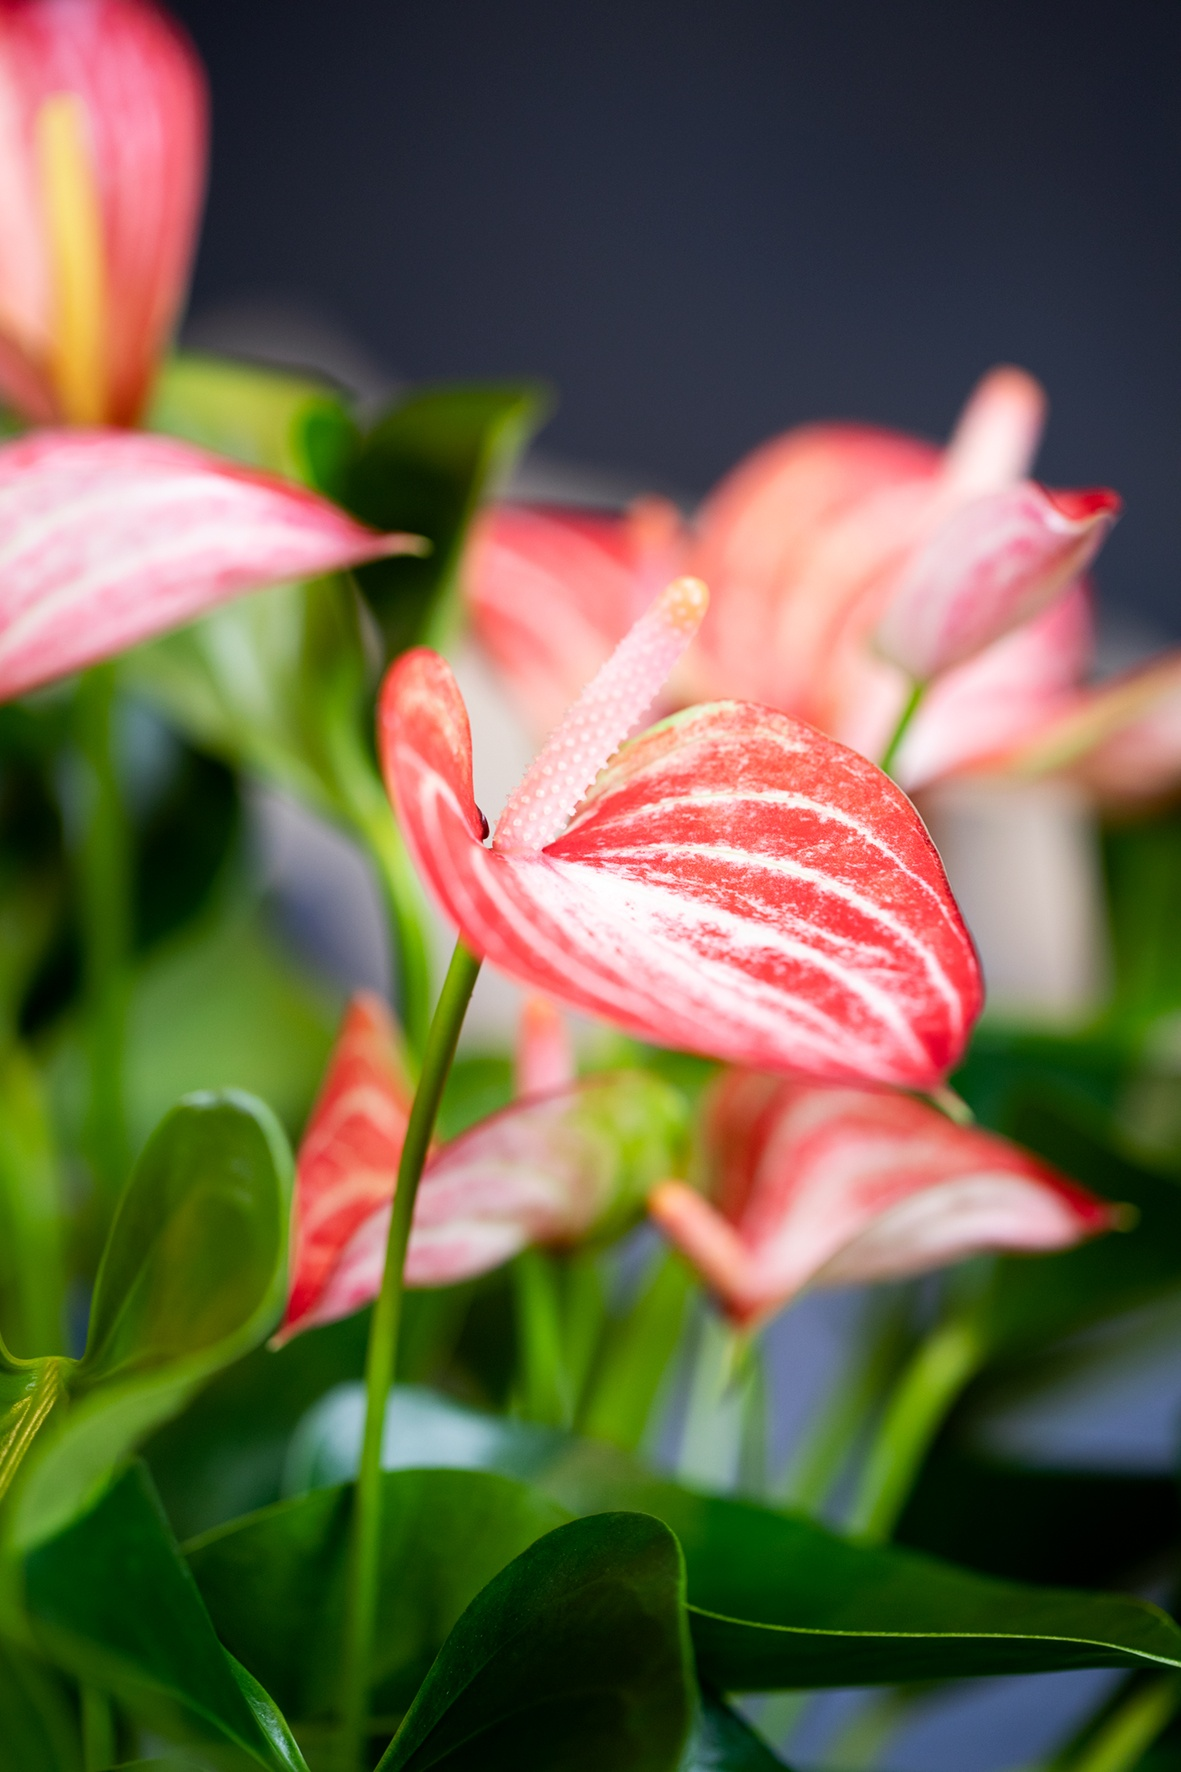 L'anthurium purifient l'air